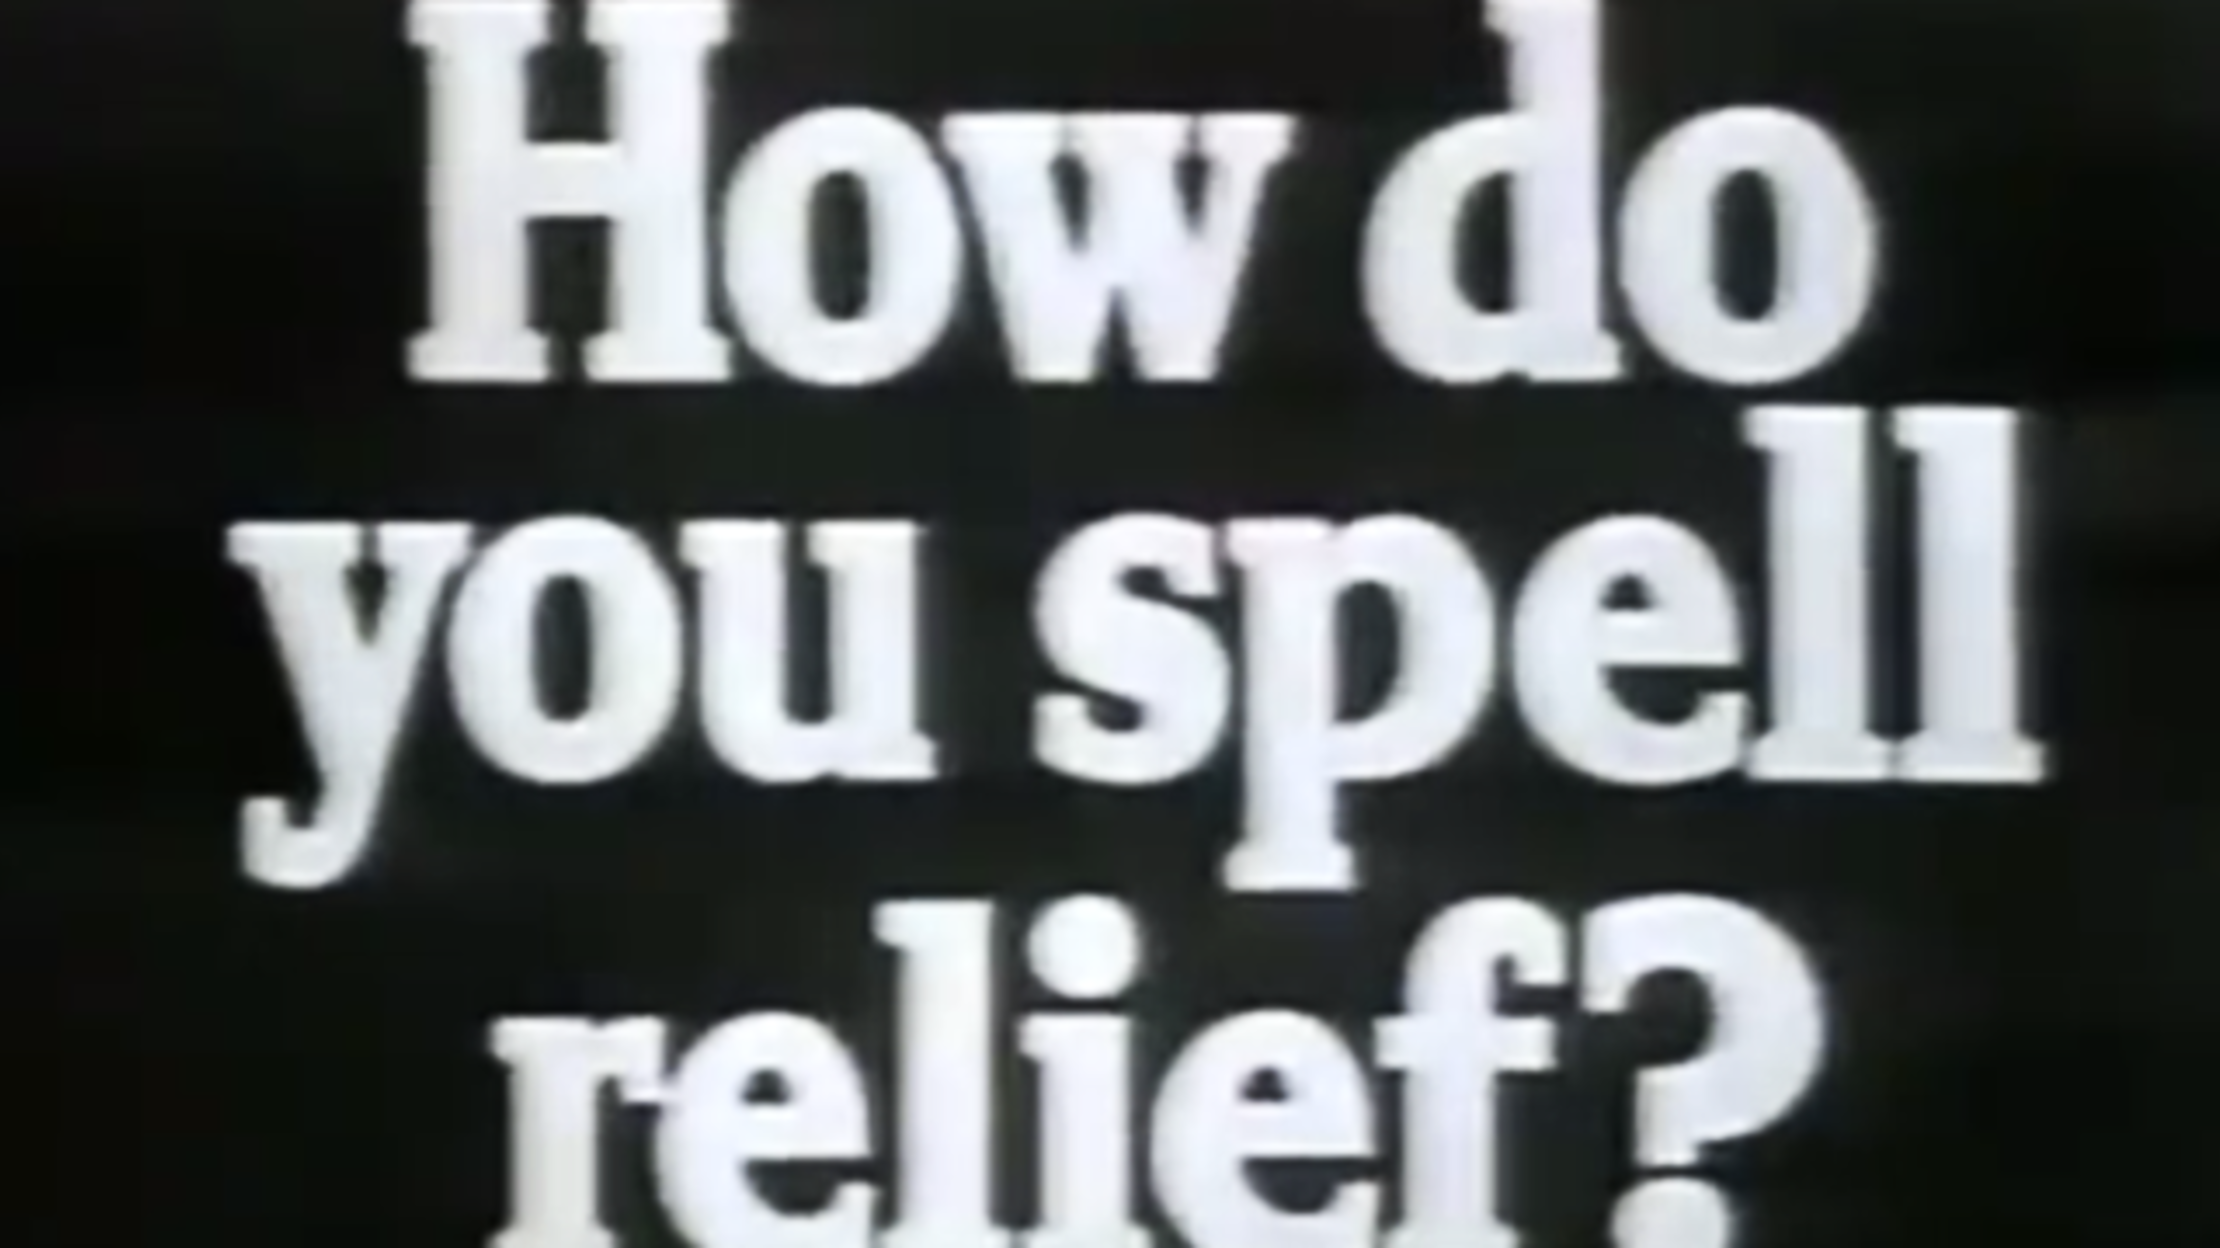 11 Advertising Slogans That Became Catch-Phrases | Mental Floss